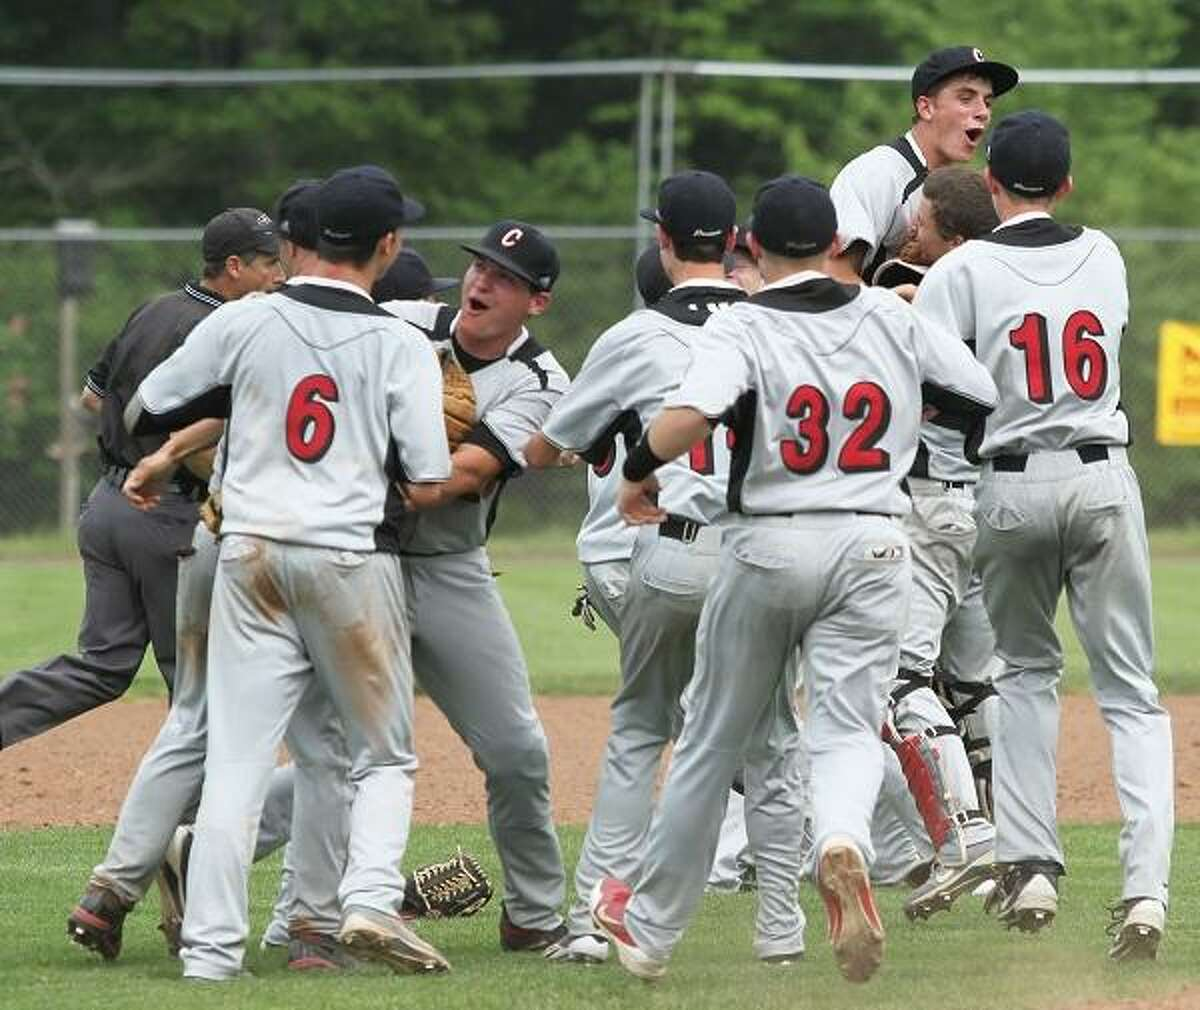 Special to the Press 05.26.12. The Cromwell baseball team celebrates its Shoreline League championship after a 3-2 victory over East Hampton. To buy a glossy print of this photo and more, visit www.middletownpress.com